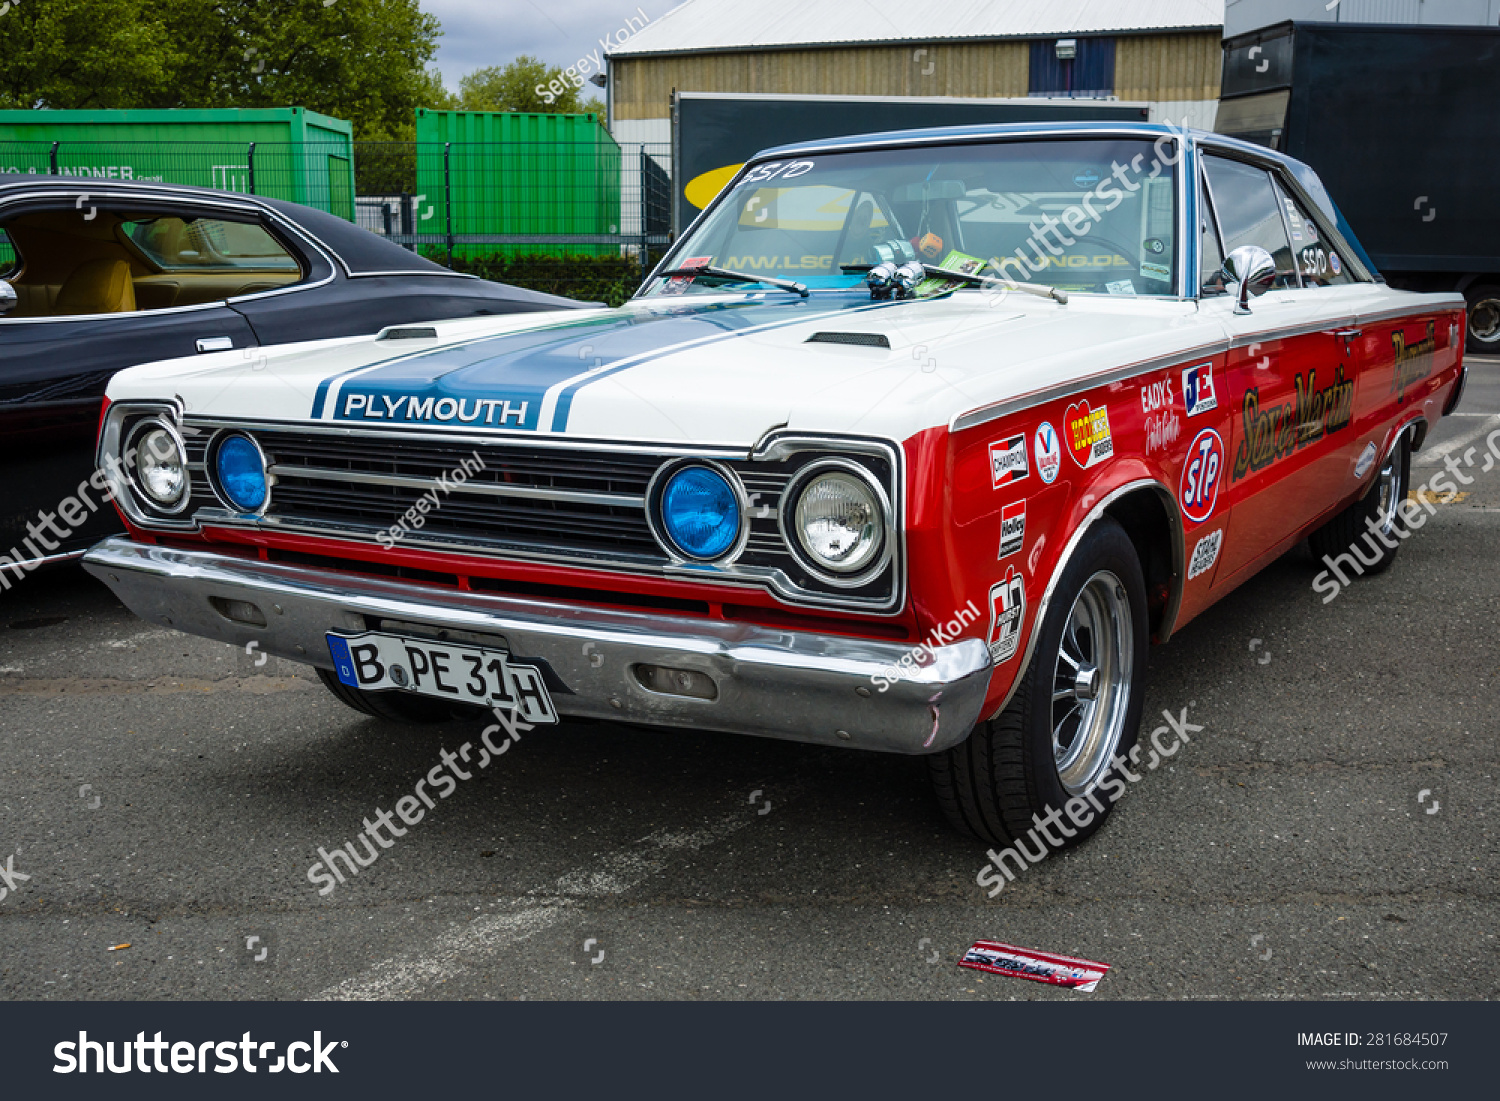 Berlin May 10 2015 Muscle Car Plymouth Gtx In The Racing